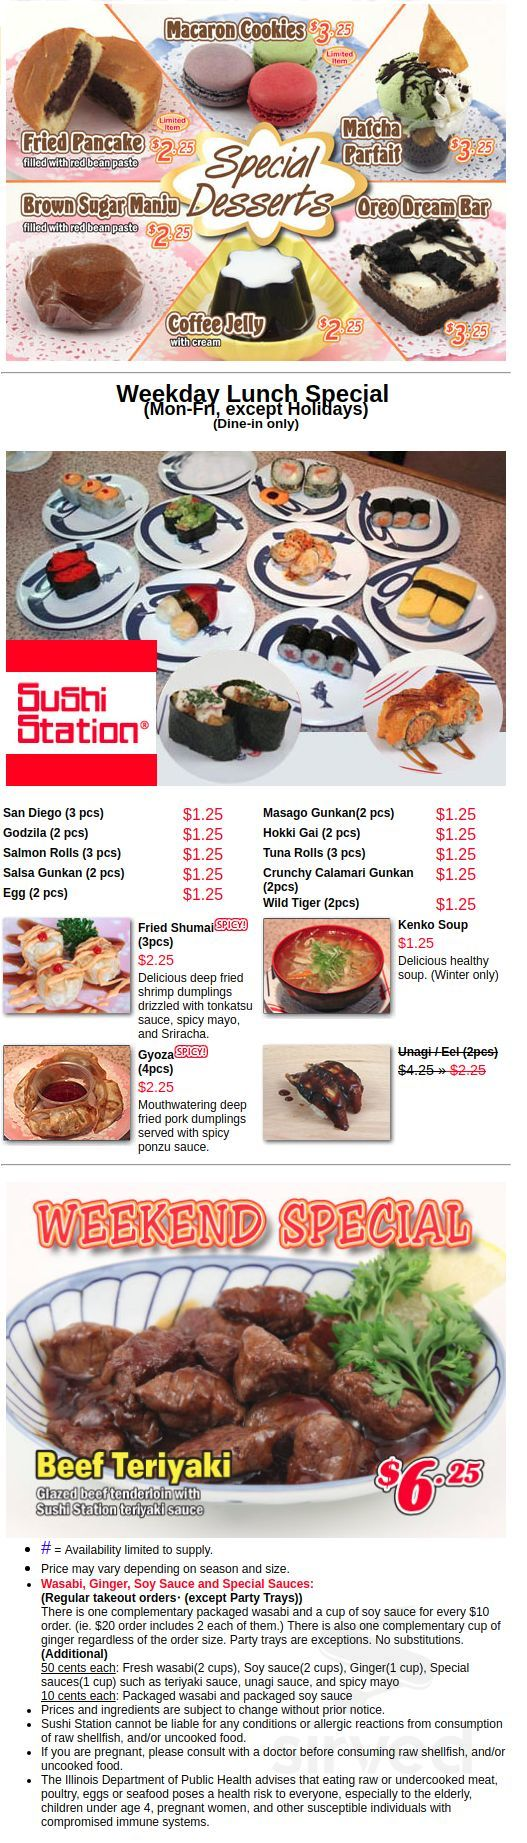 Sushi Station Menu In Rolling Meadows Illinois Usa Locate your favorite store in your city. sushi station menu in rolling meadows